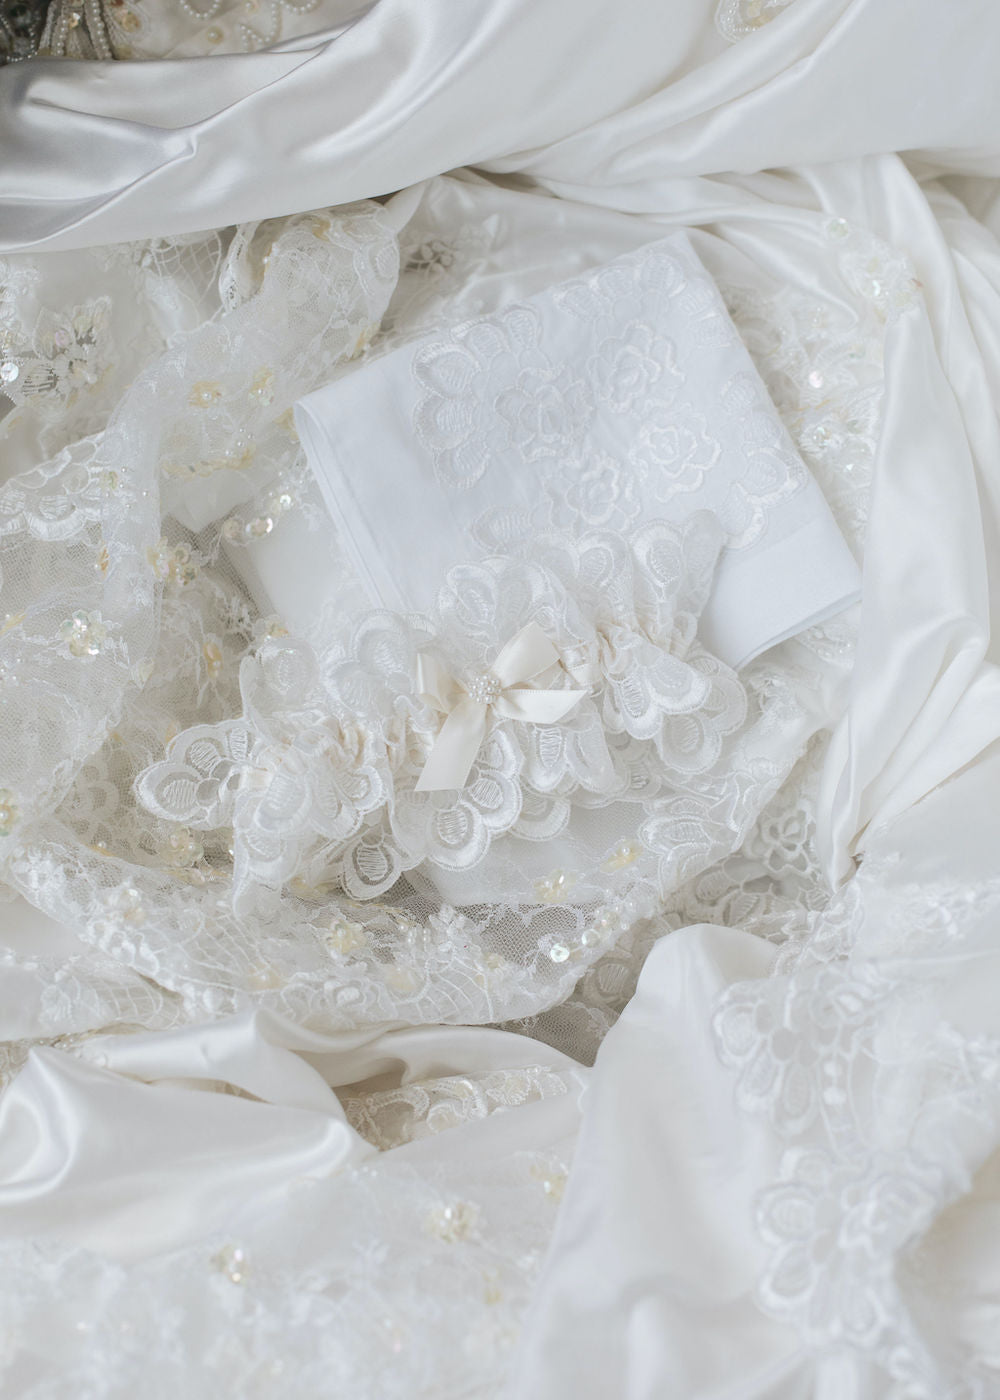 what do with mother's wedding dress - custom hanky & wedding garter with lace & pearls by expert bridal heirloom designer, The Garter Girl